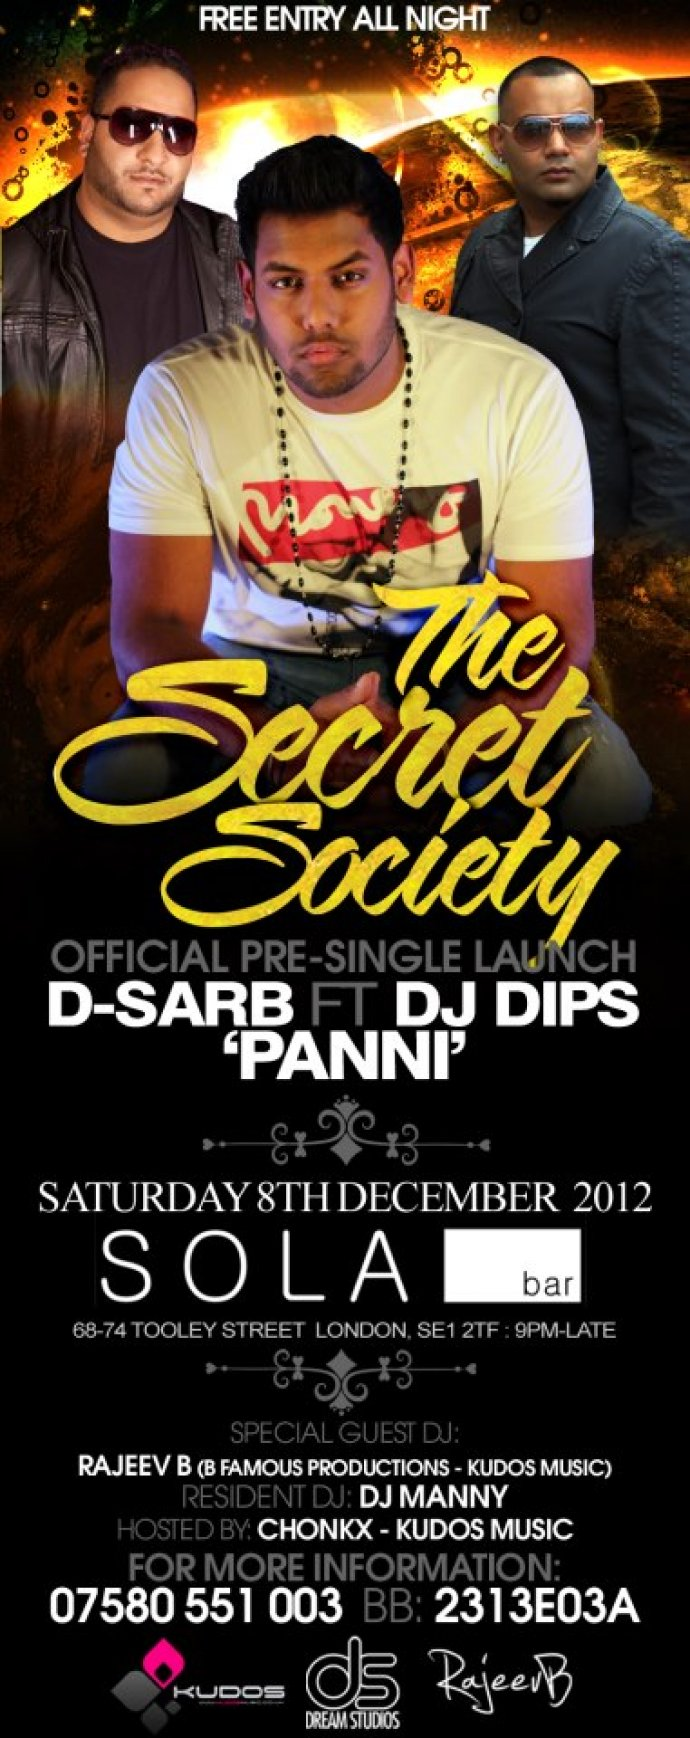 DJ Dips Hosts a FREE ENTRY party in London to celebrate the up and coming release of his next single ft D-Sarb